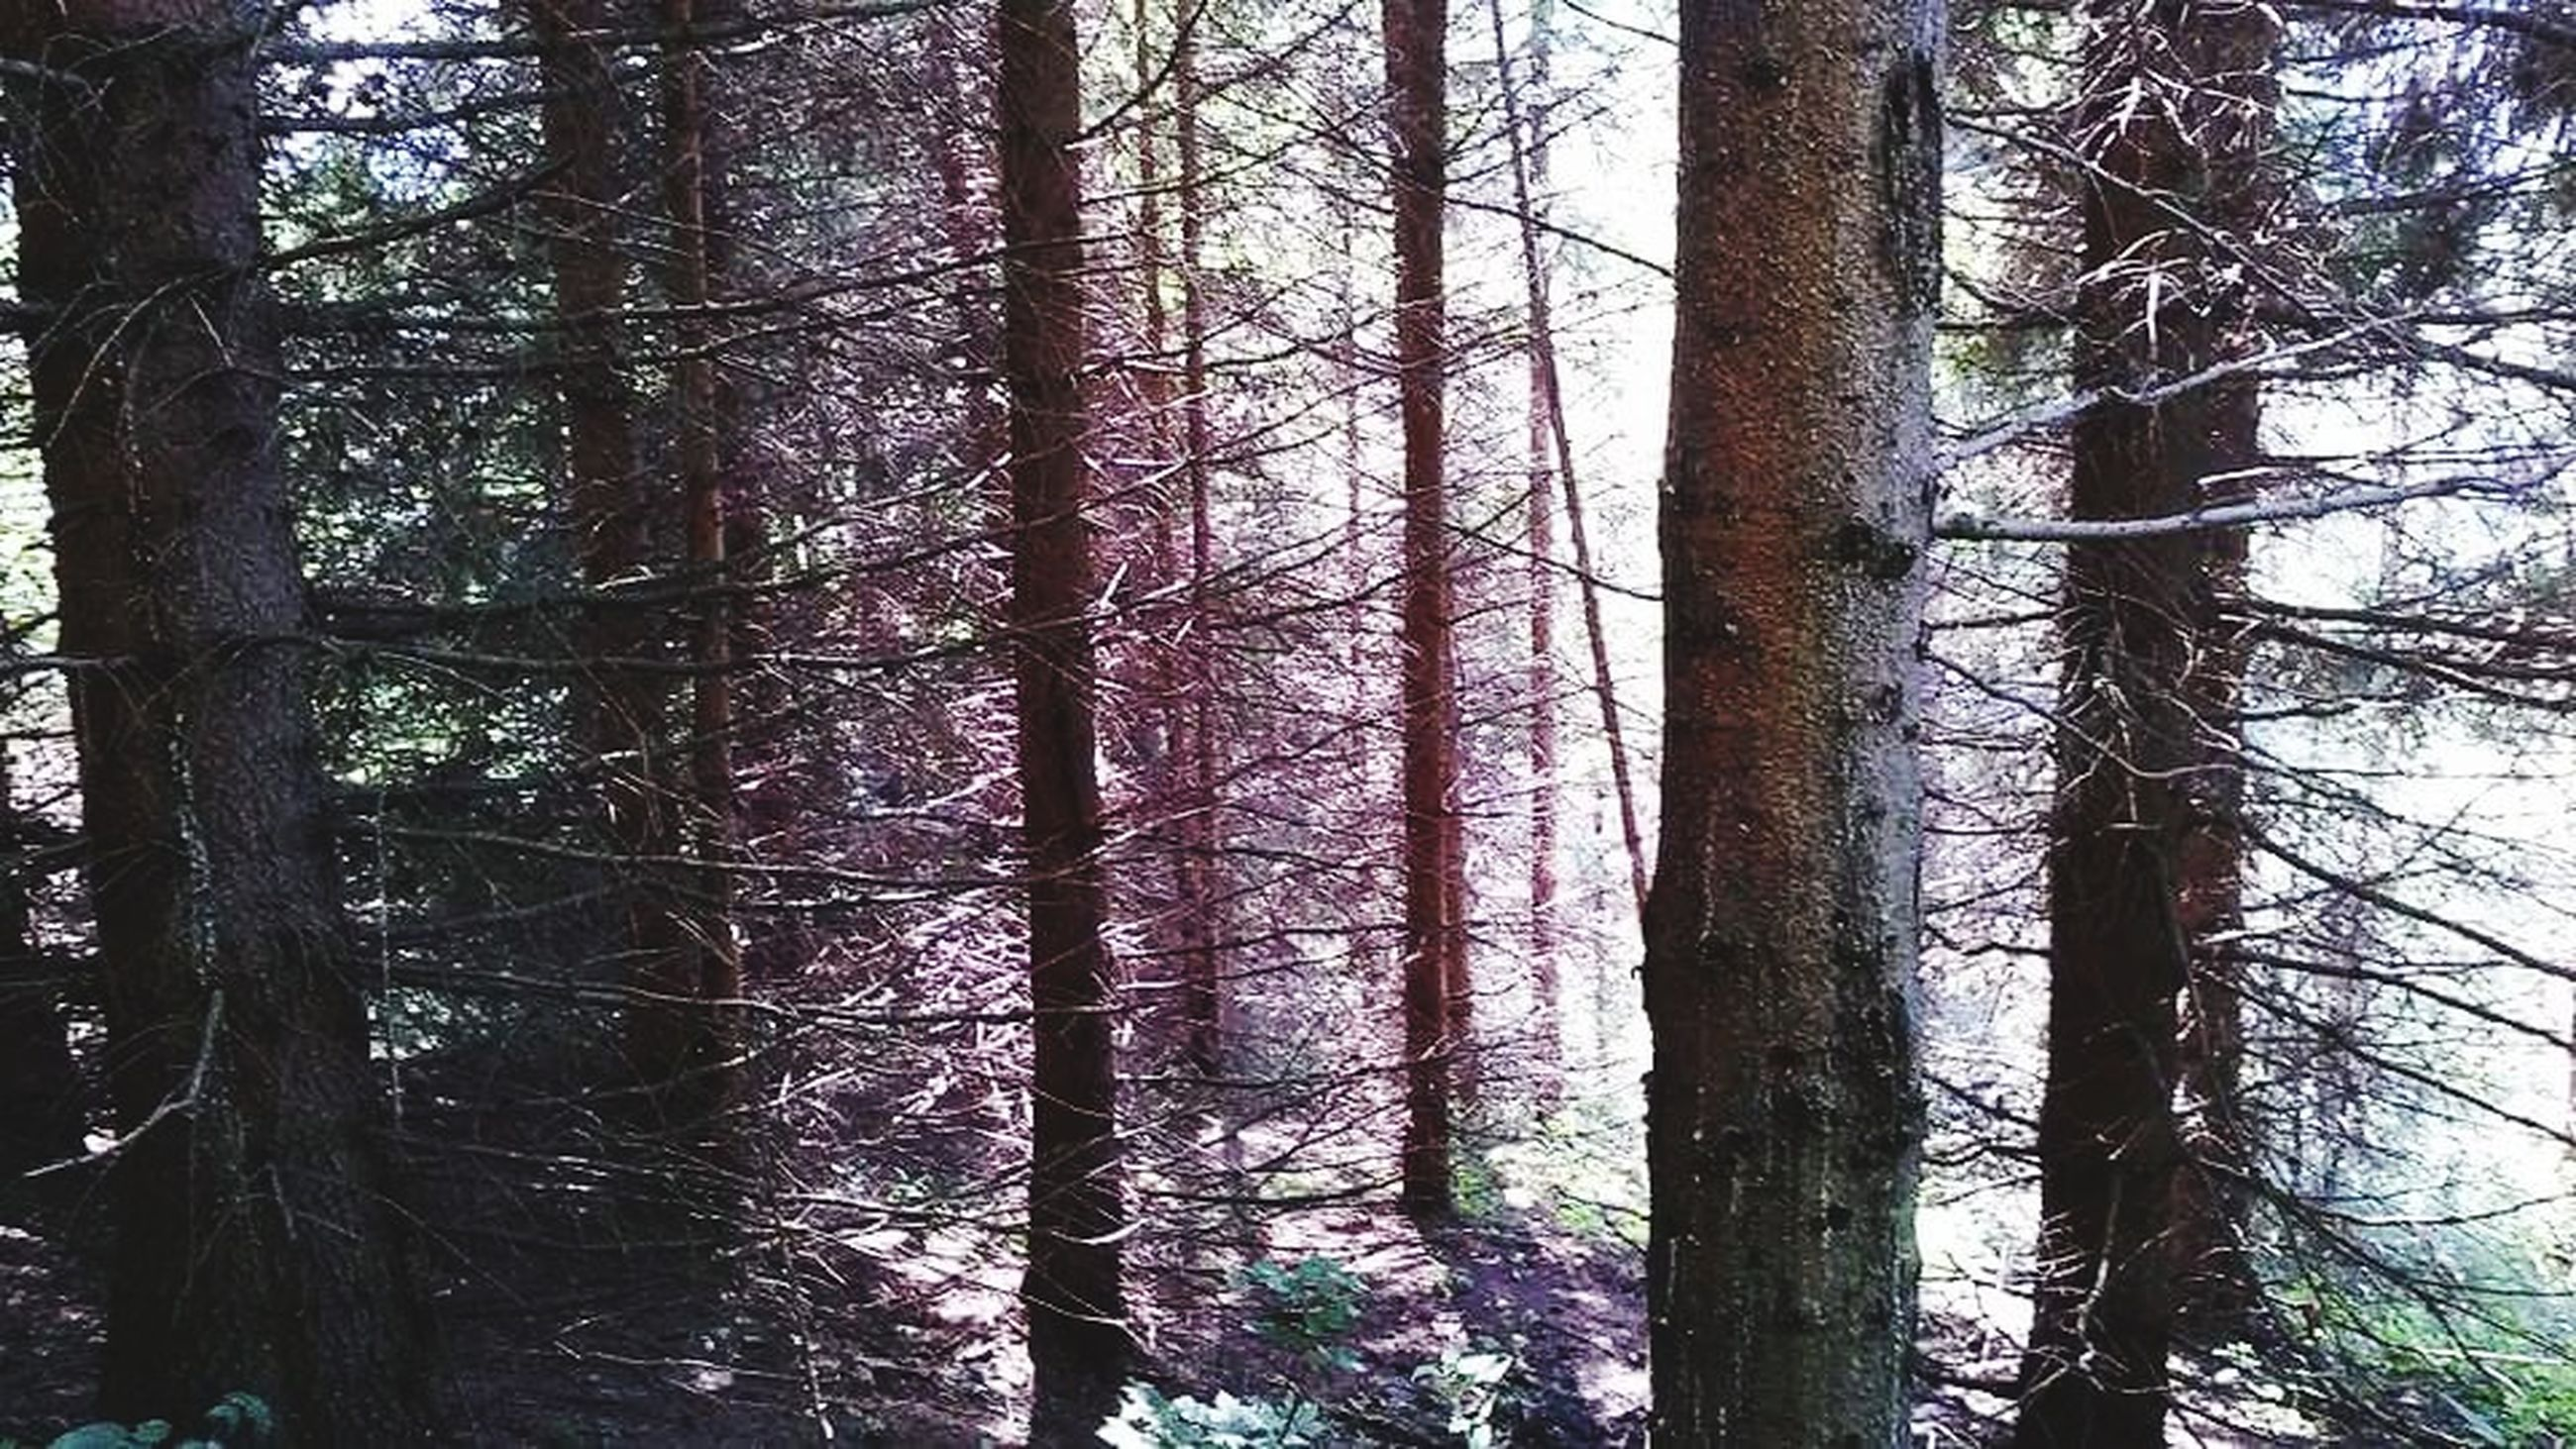 tree trunk, tree, forest, nature, woodland, day, tranquil scene, tranquility, no people, growth, beauty in nature, outdoors, scenics, wilderness area, branch, landscape, forest fire, sky